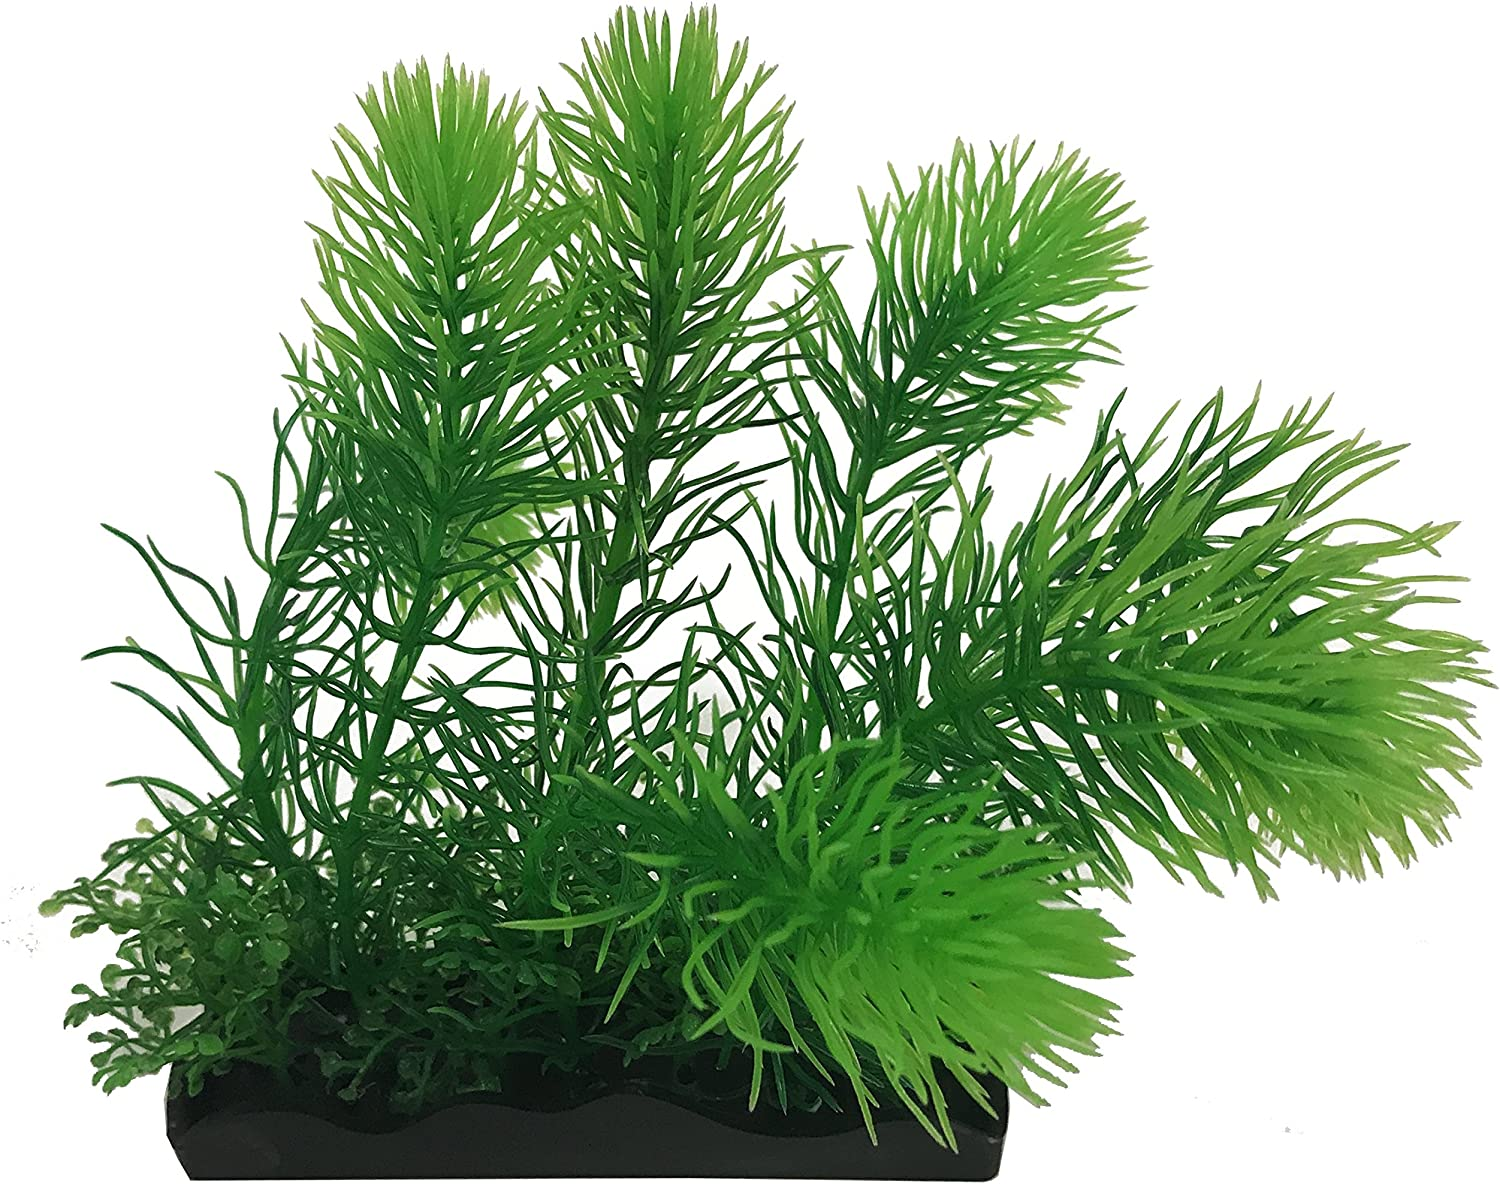 Penn-Plax Aqua-Scaping Large Water Sprite Bunch Plant